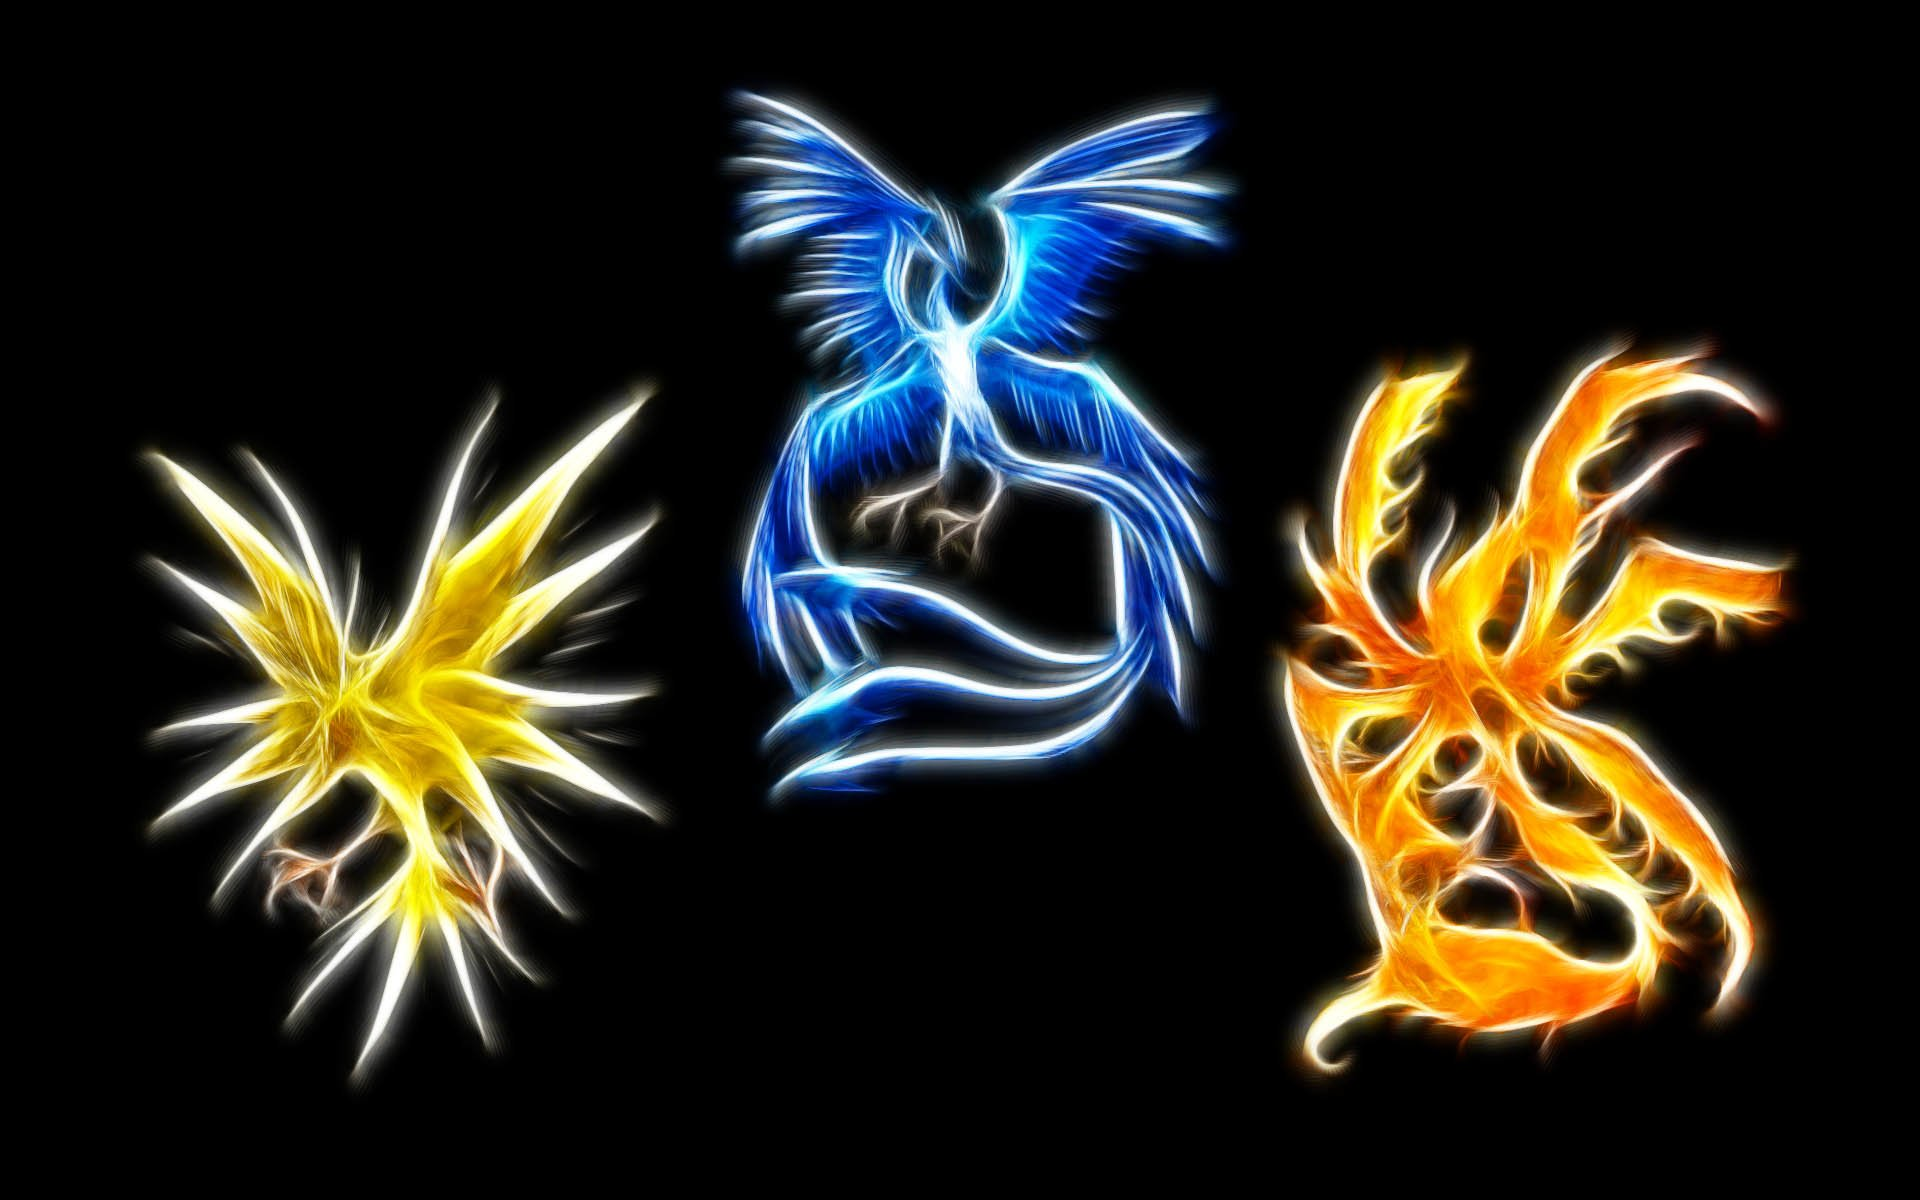 Video Game - Pokemon  Pokémon Articuno (Pokémon) Moltres (Pokemon) Zapdos (Pokemon) Wallpaper